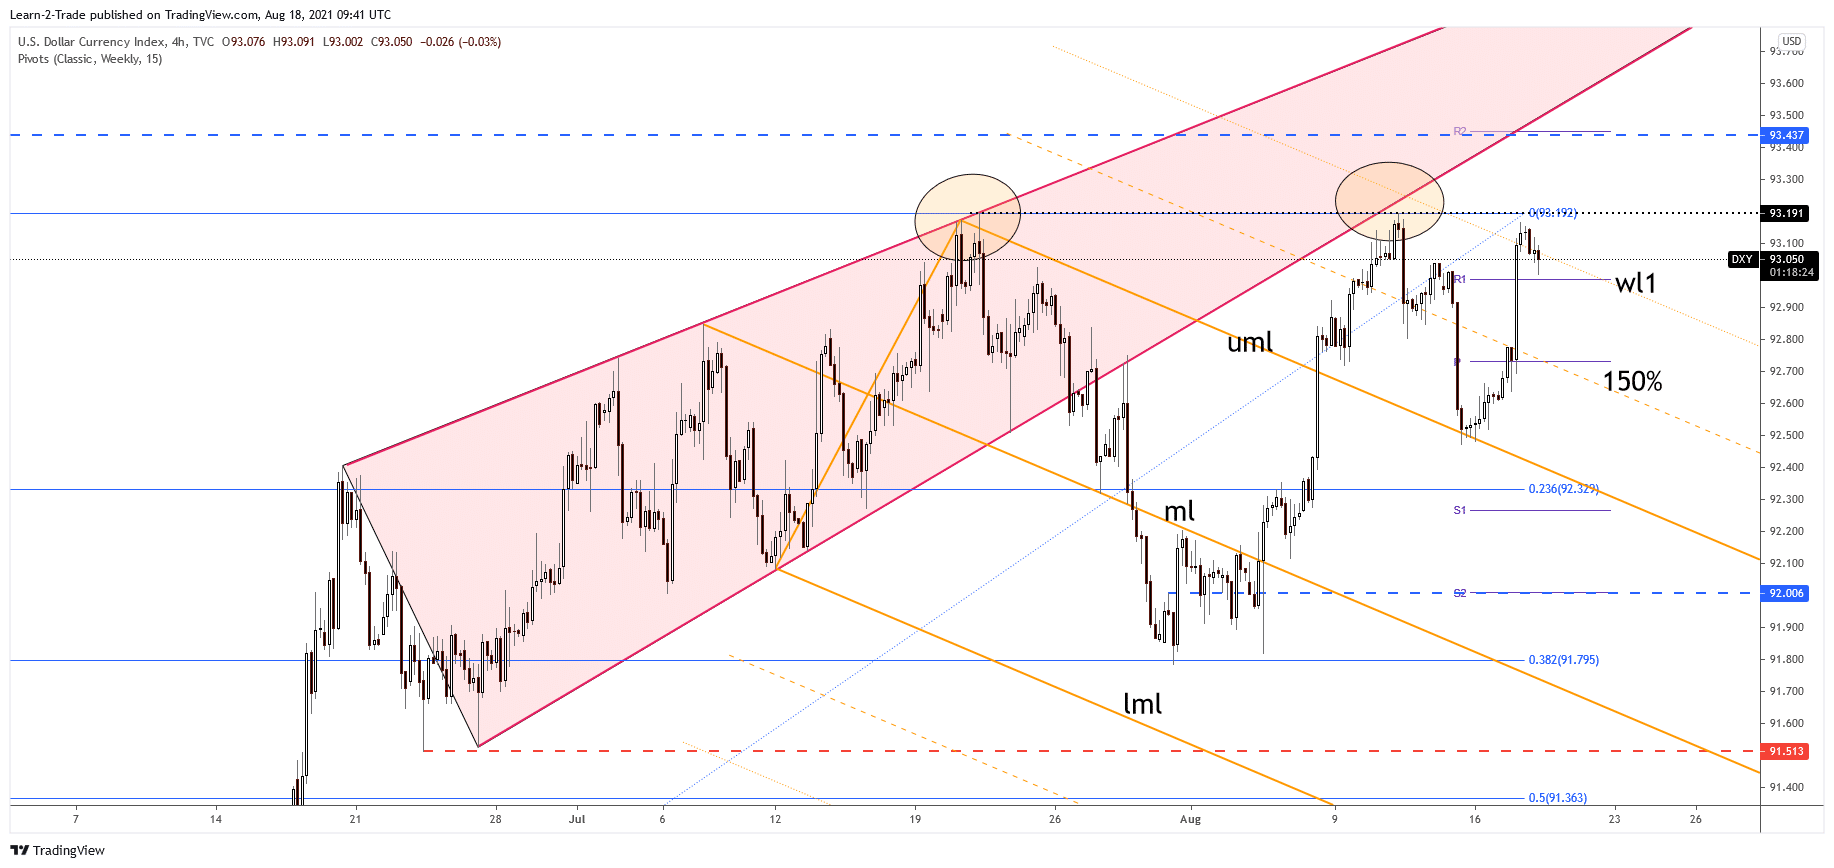 DXY Dollar Index 4-hour price chart